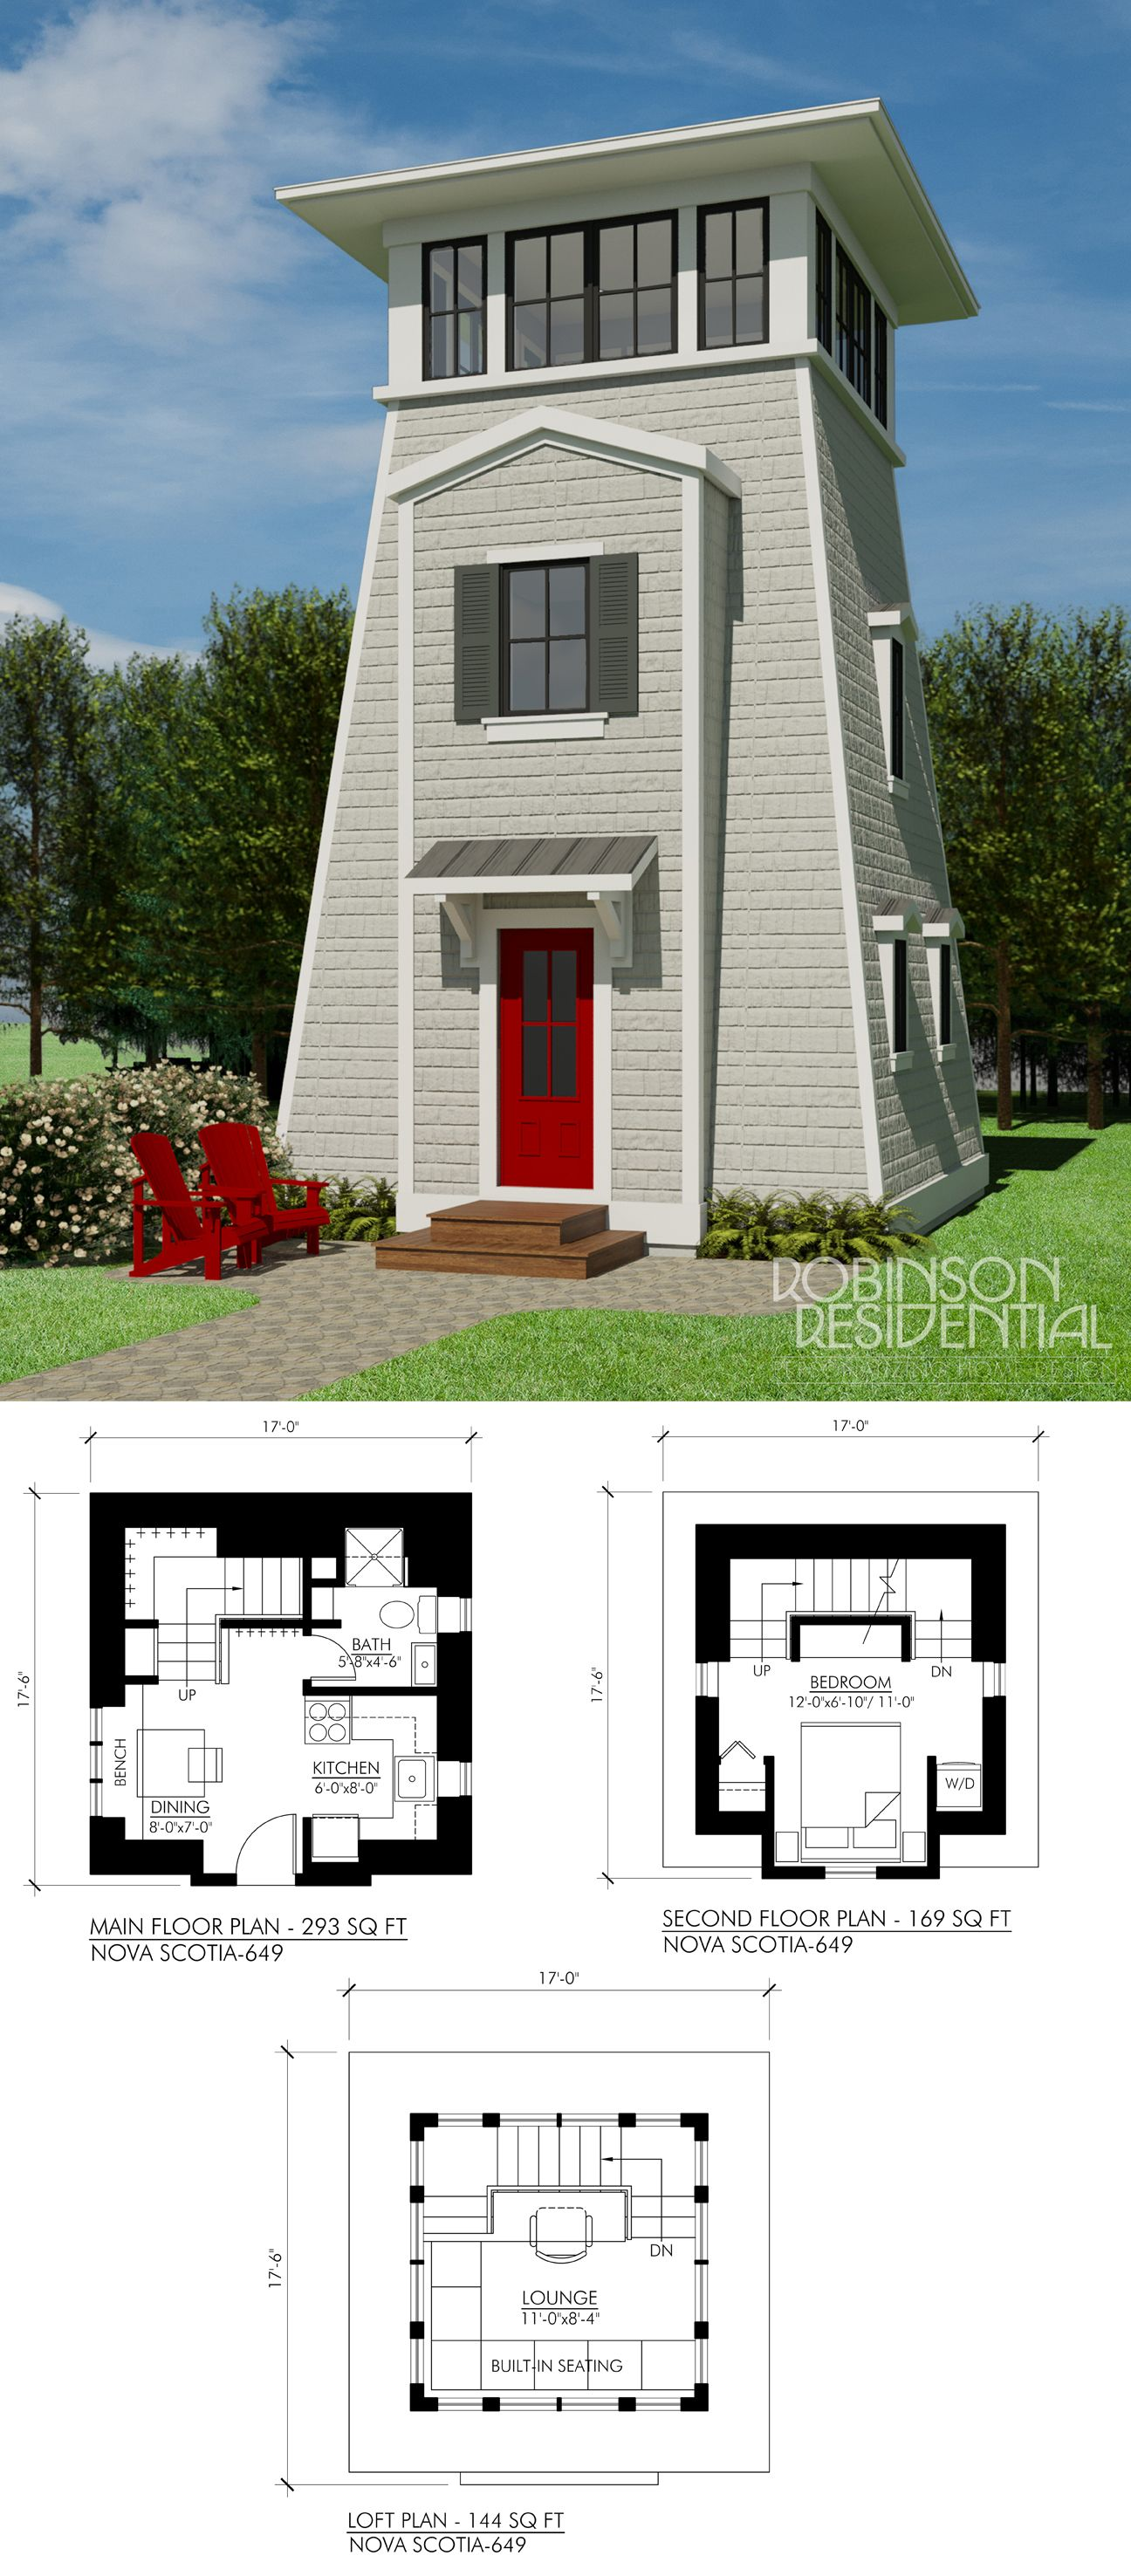 nova scotia 657 robinson plans tiny house 3 bedroomtiny - Tiny Tower 3 Bedroom Home Design